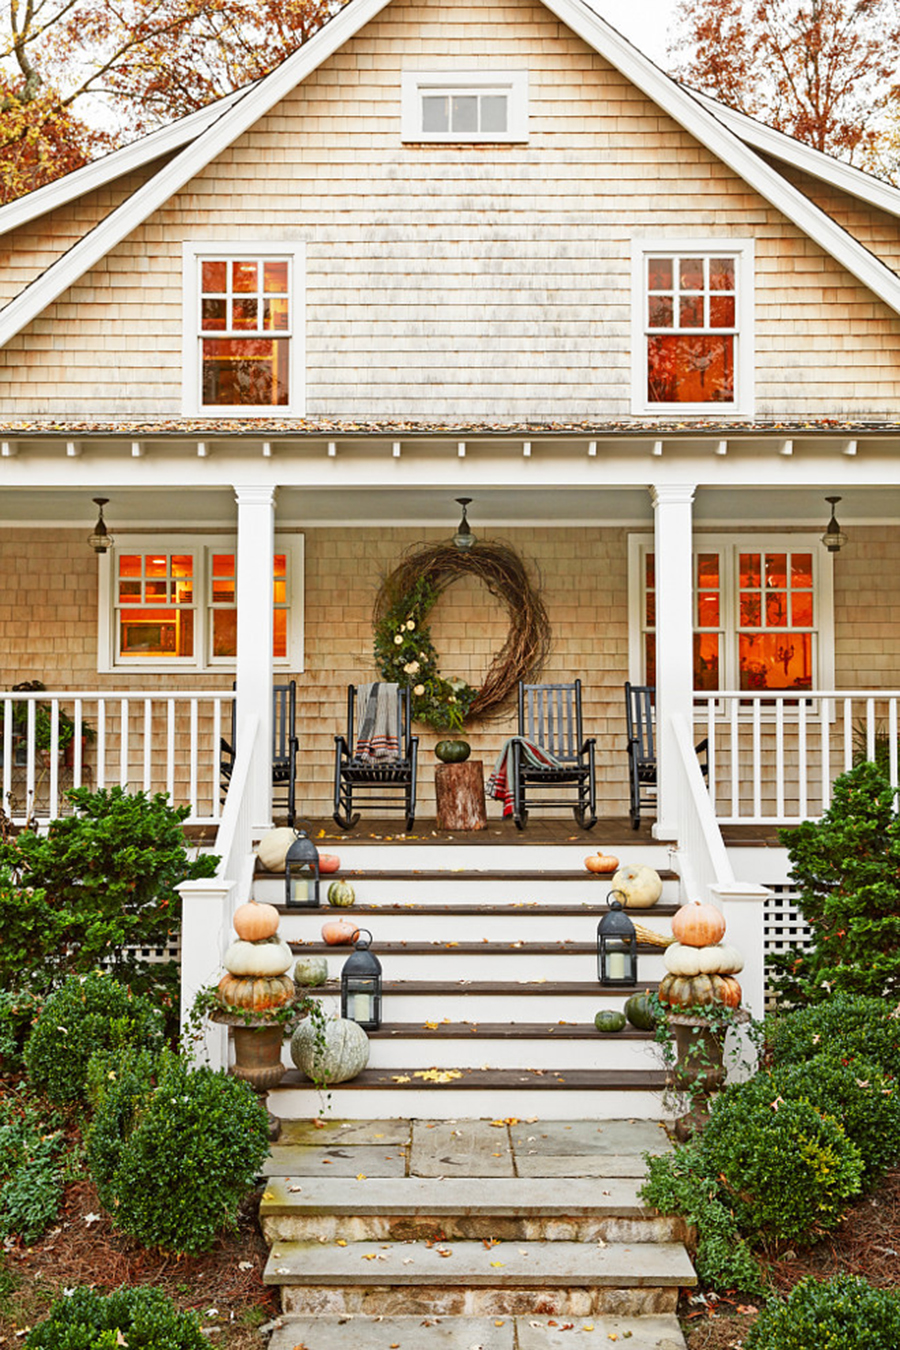 It\'s September 1: I Am Decorating for Fall – The Elizabeth Street ...